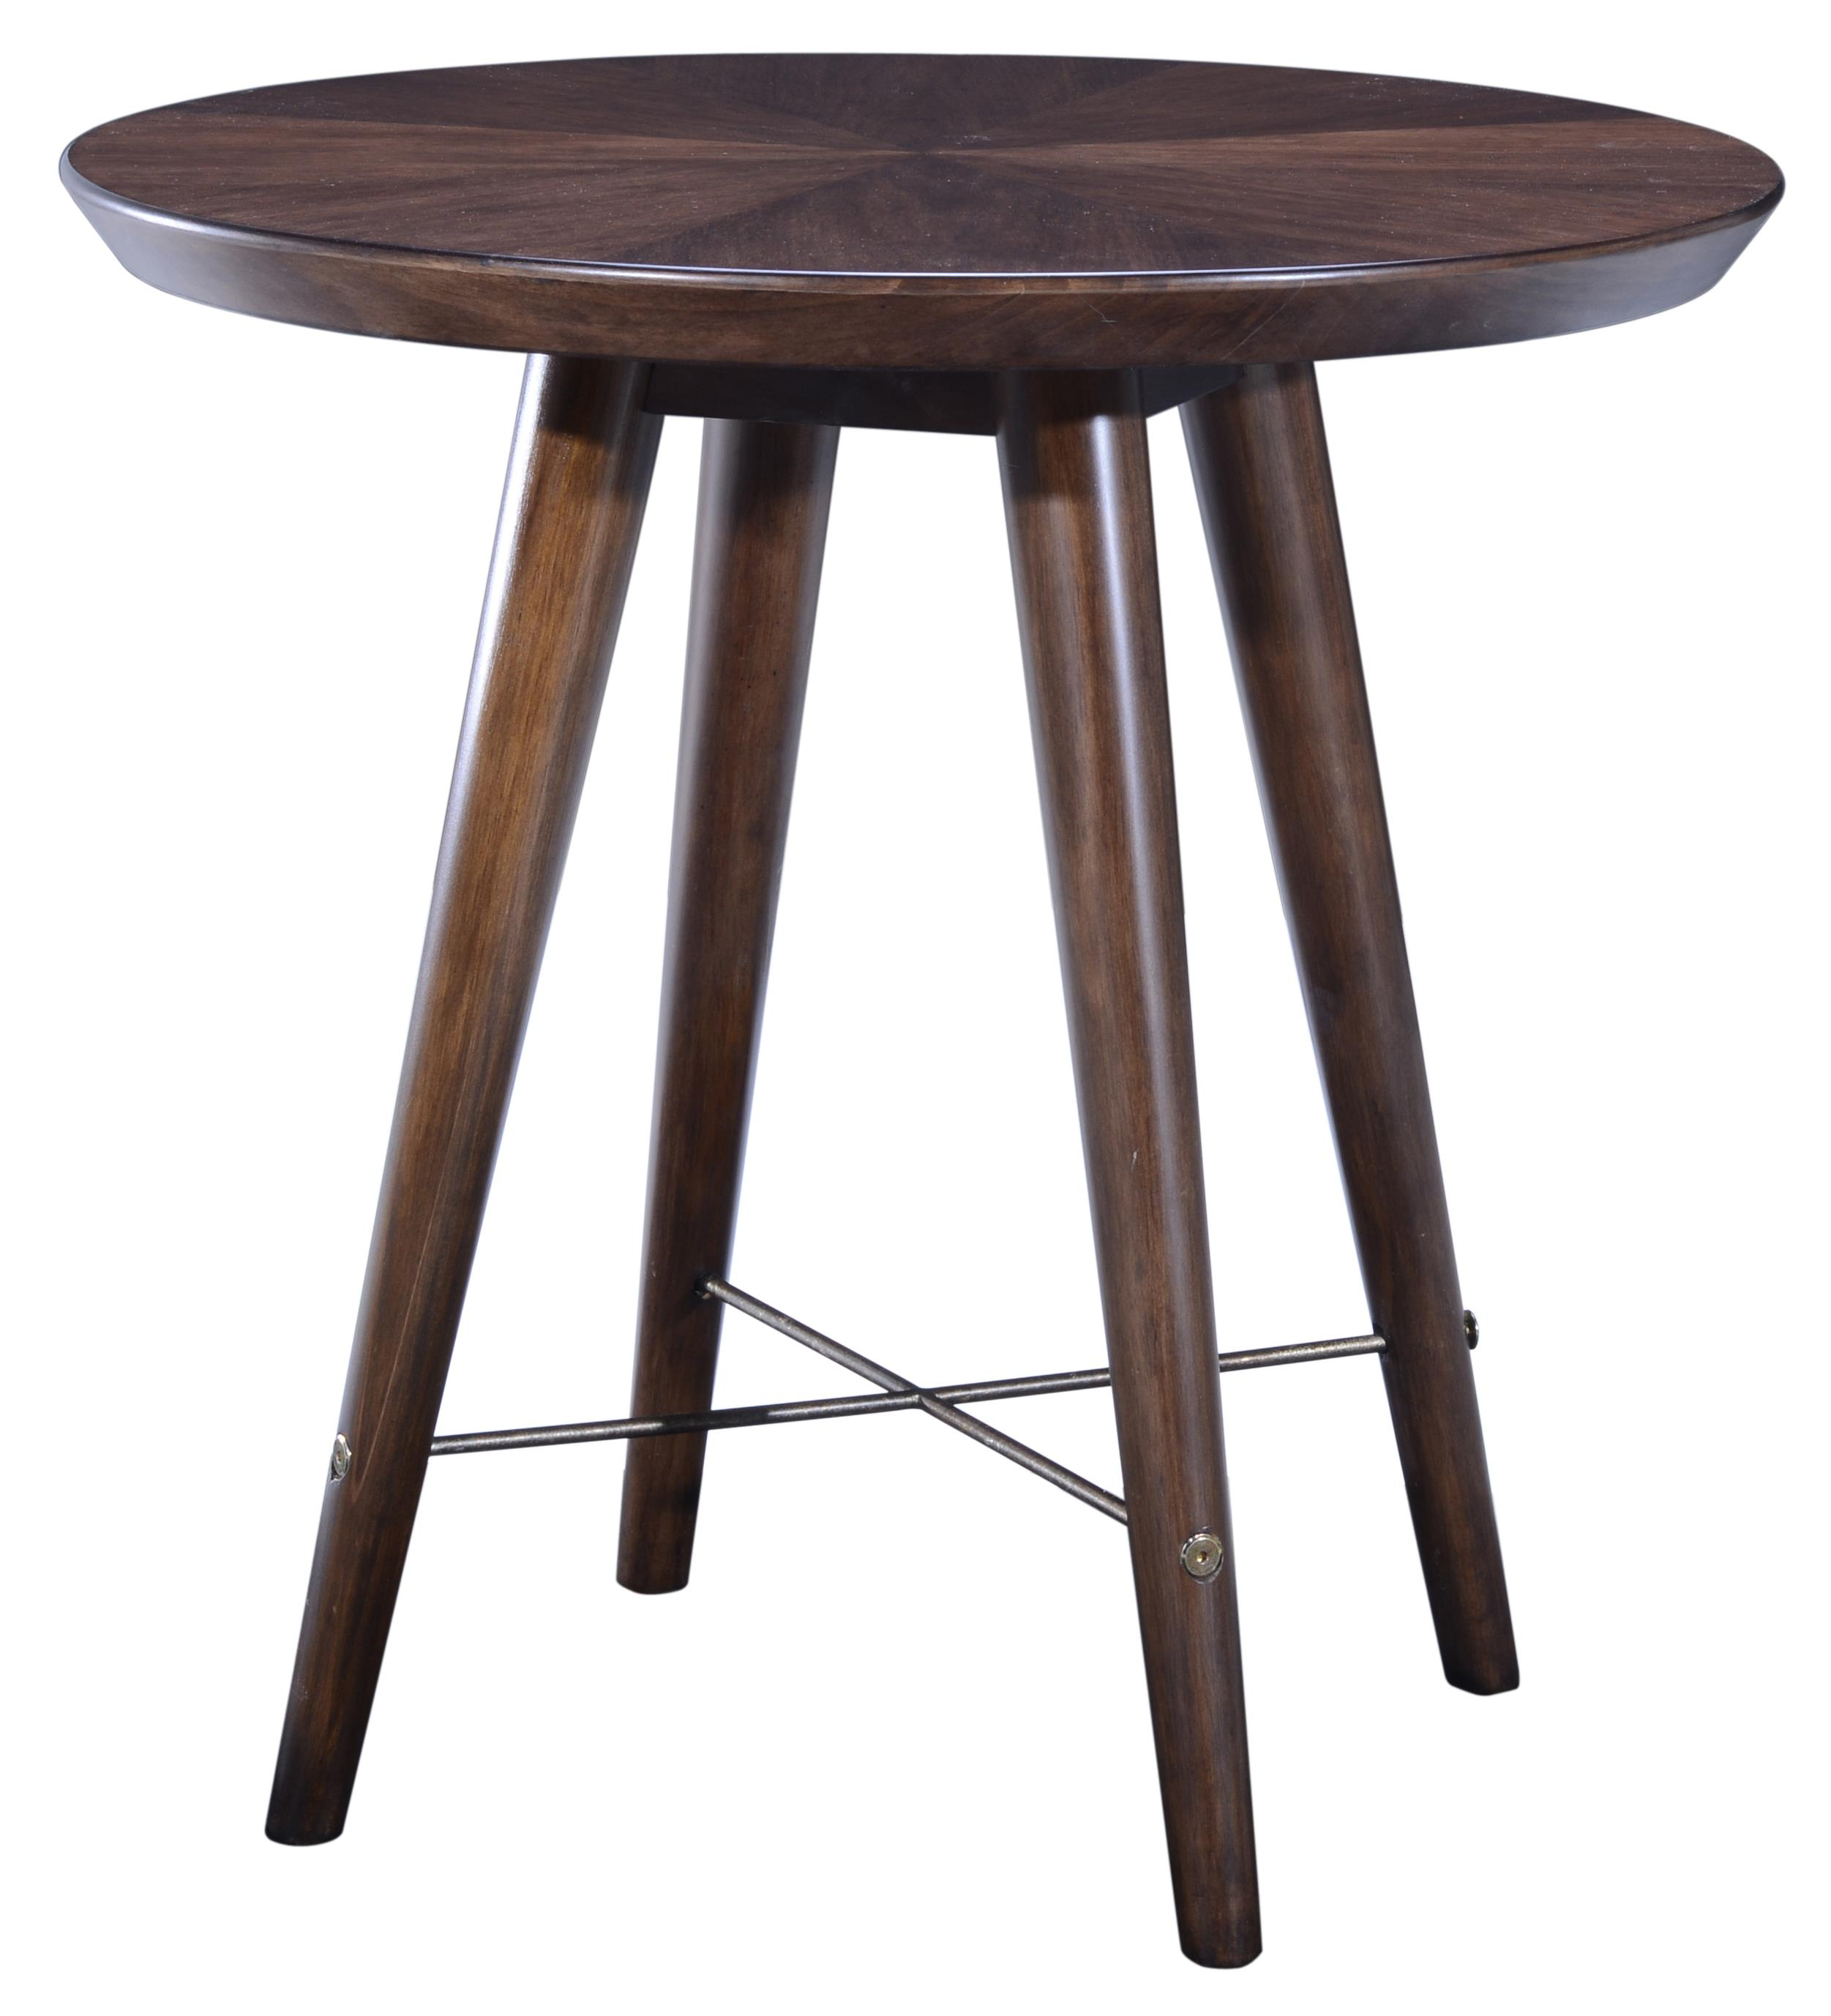 Belfort Signature Urban Treasures 14th and U Round End Table - Item Number: 223303-1812